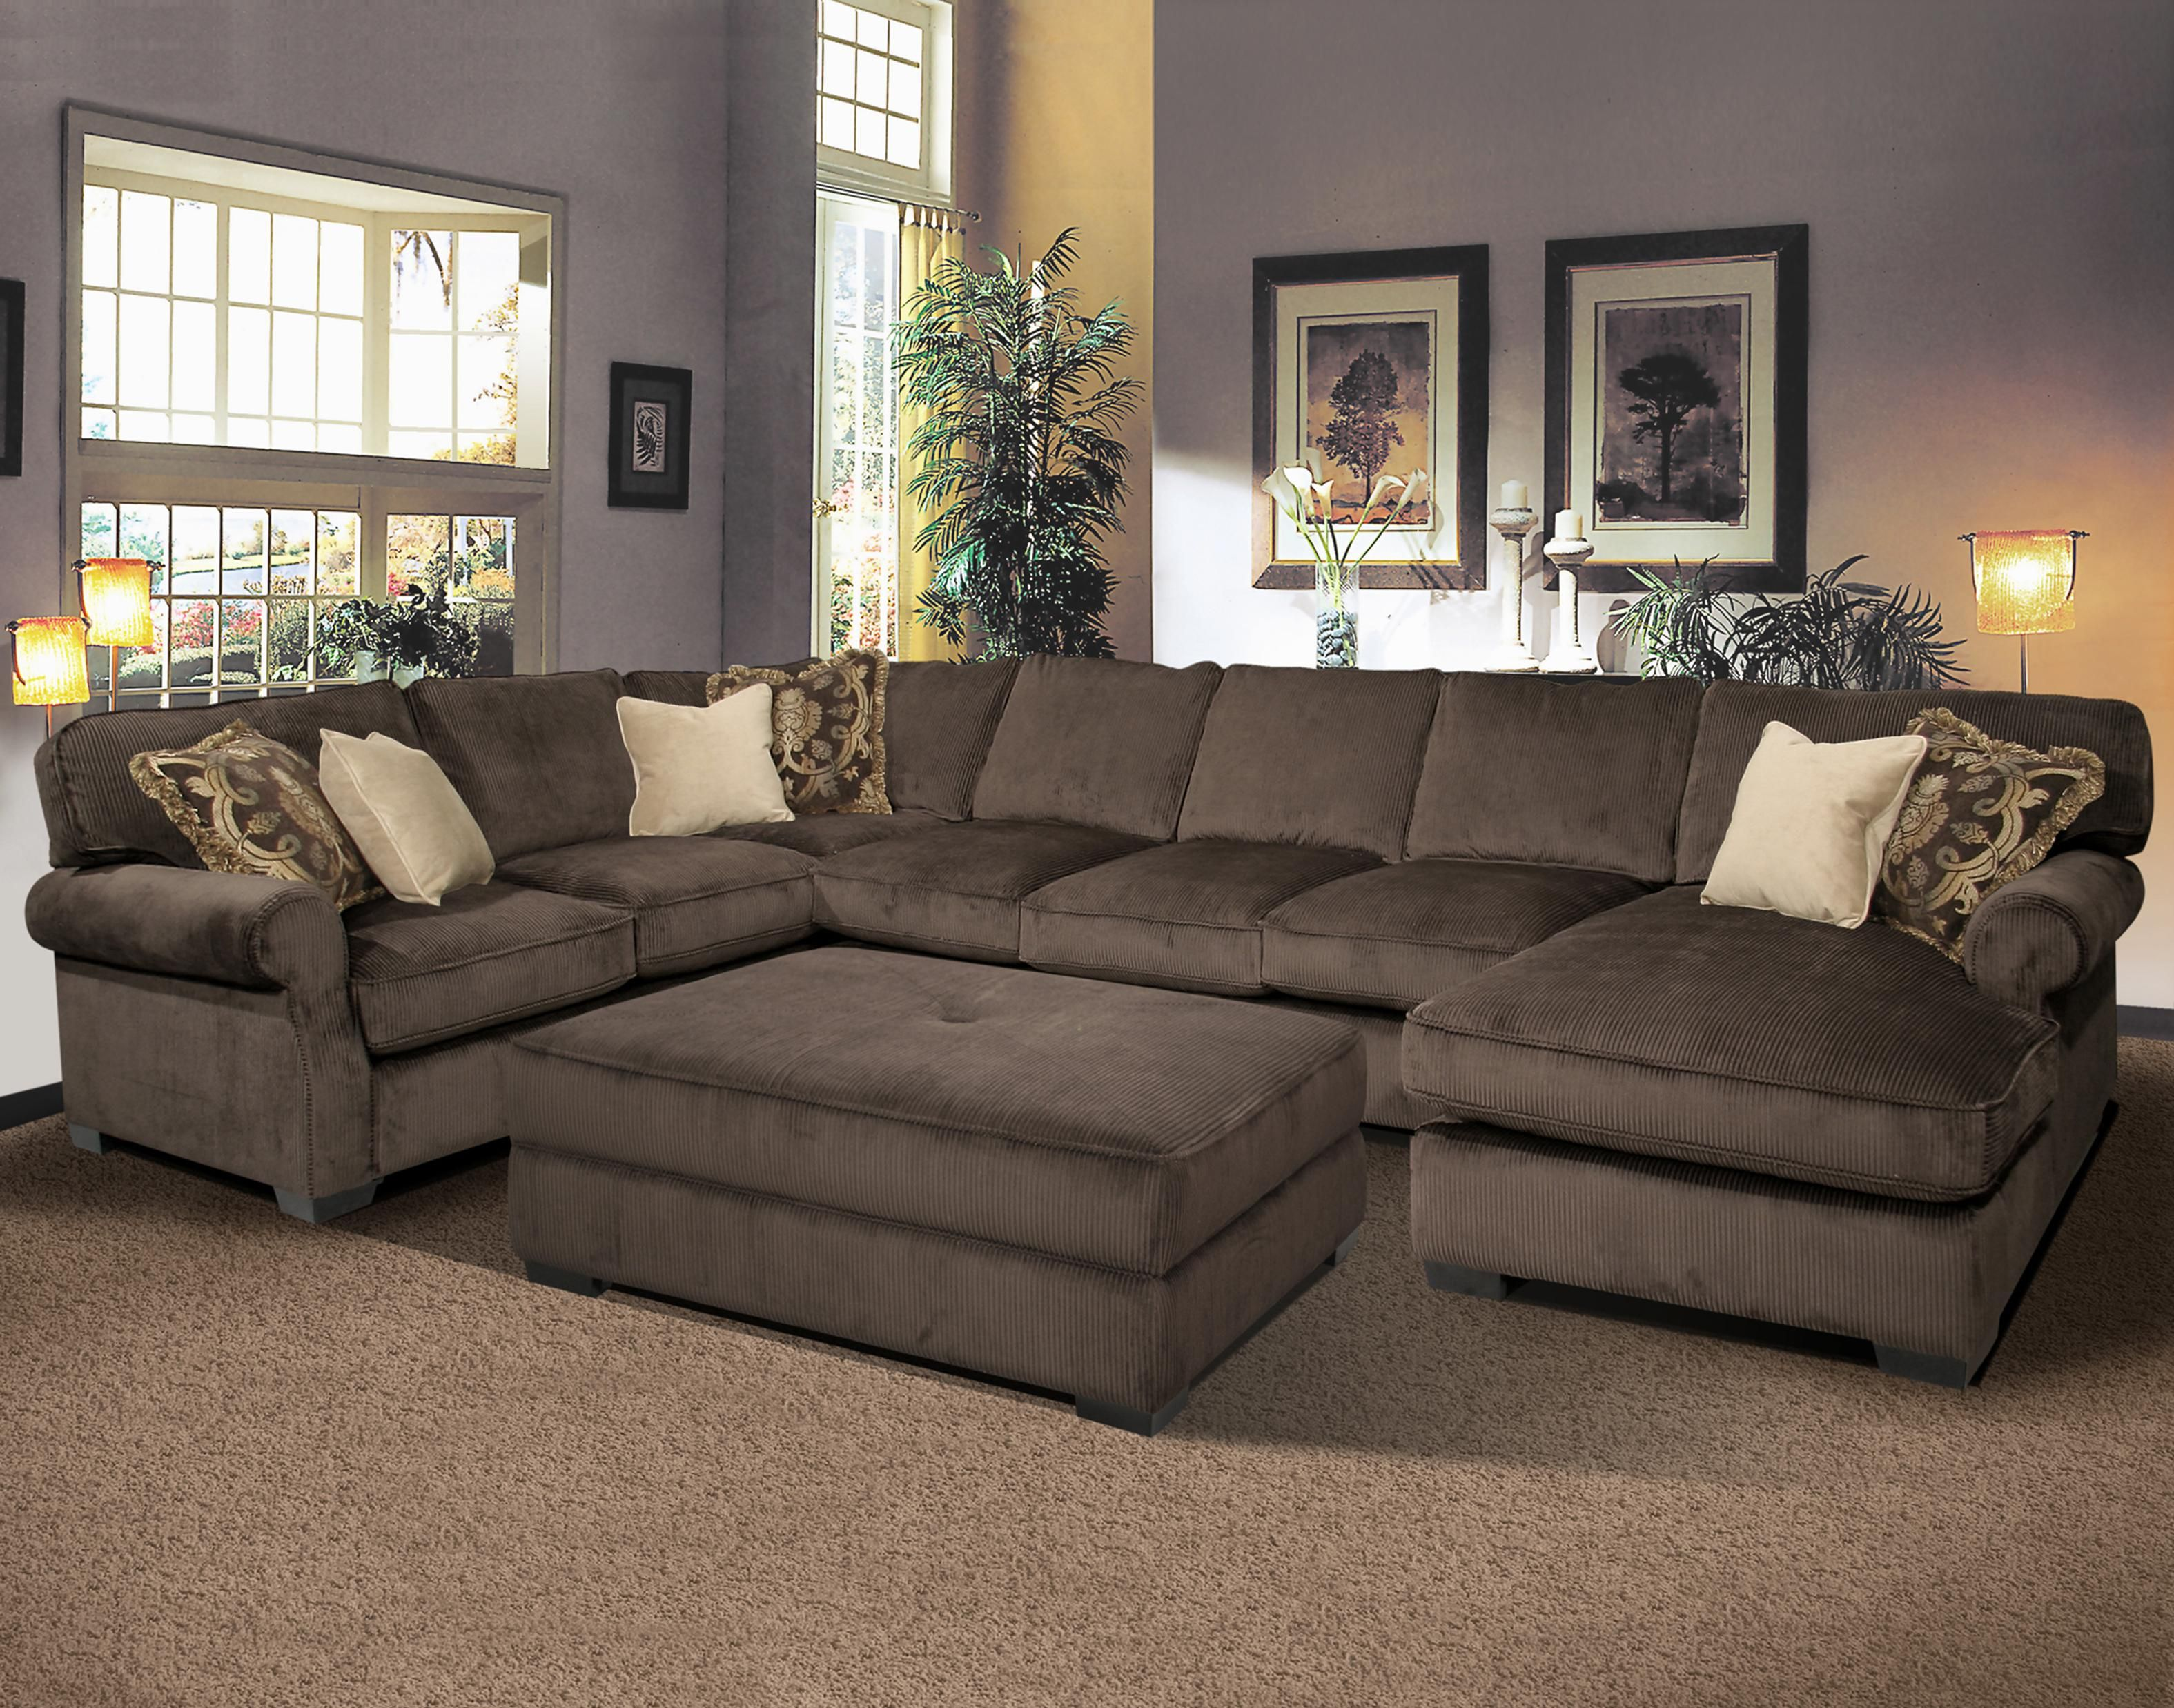 BIG AND COMFY Grand Island Large, 7 Seat Sectional Sofa with Right ...